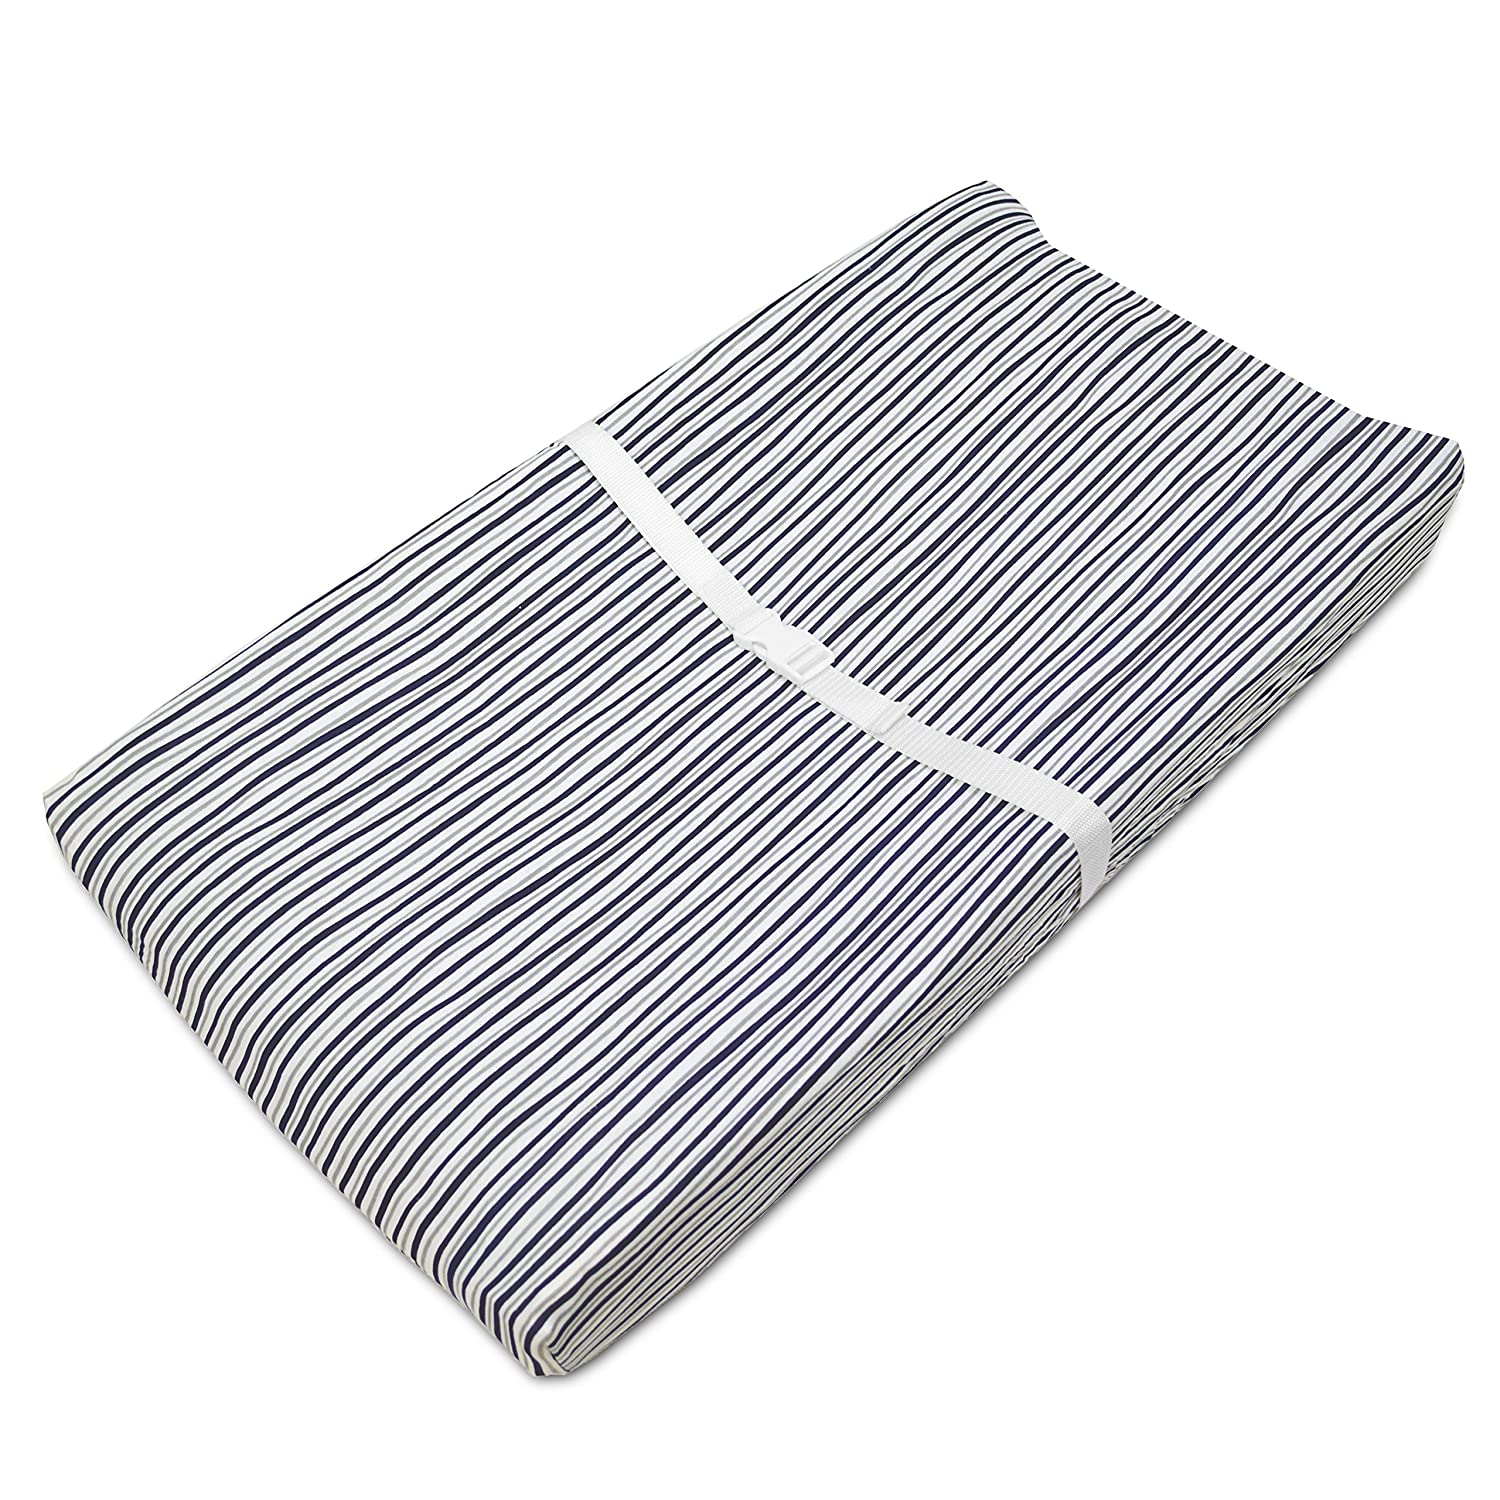 TL Care Printed 100% Cotton Jersey Knit Fitted Contoured Changing Table Pad Cover, Funny Navy Stripes 3555 FS